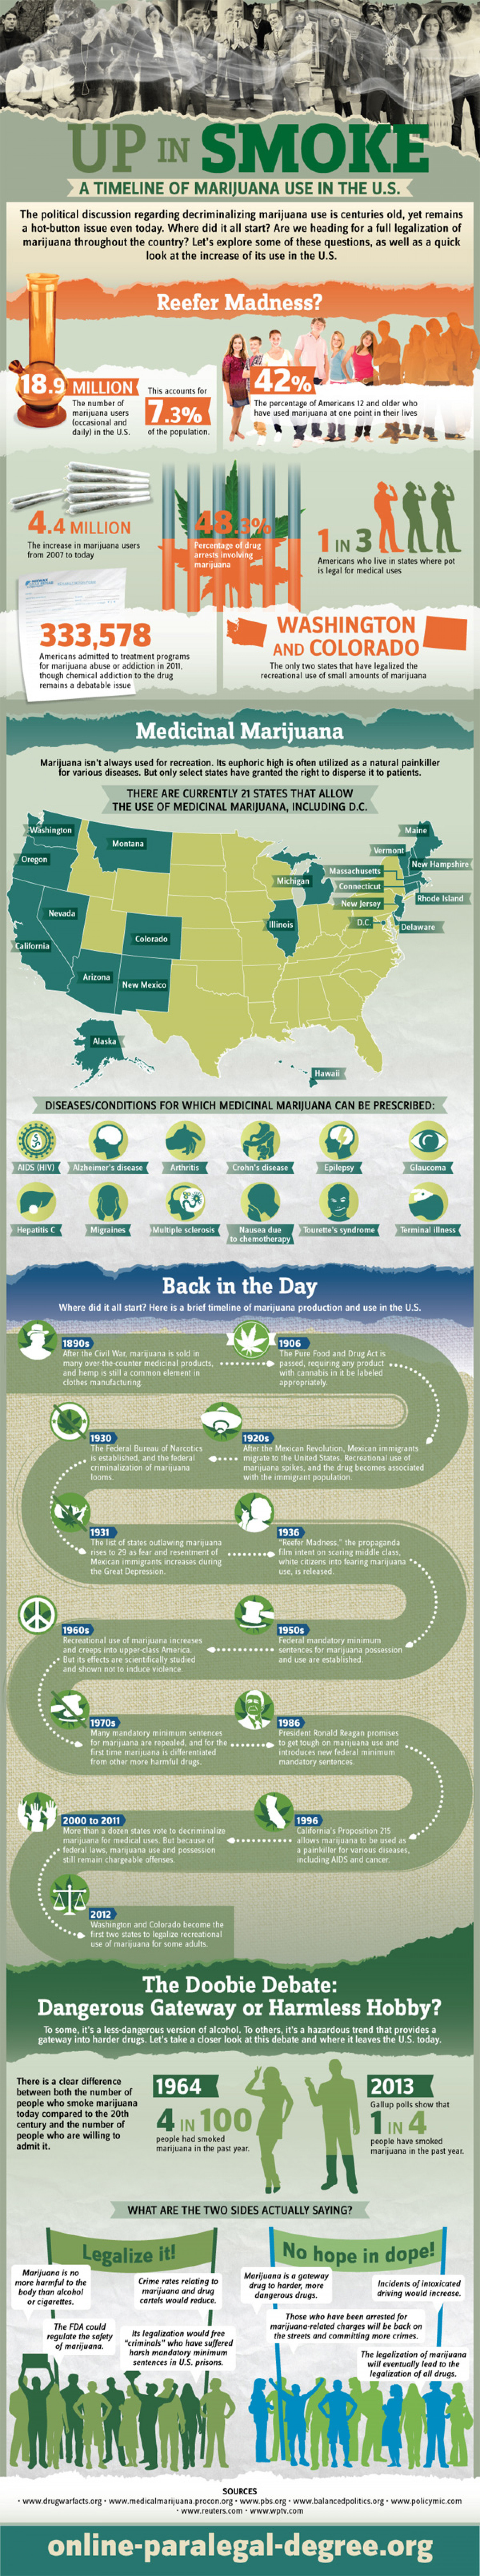 Up in Smoke: A Timeline of Marijuana Use in the U.S. Infographic